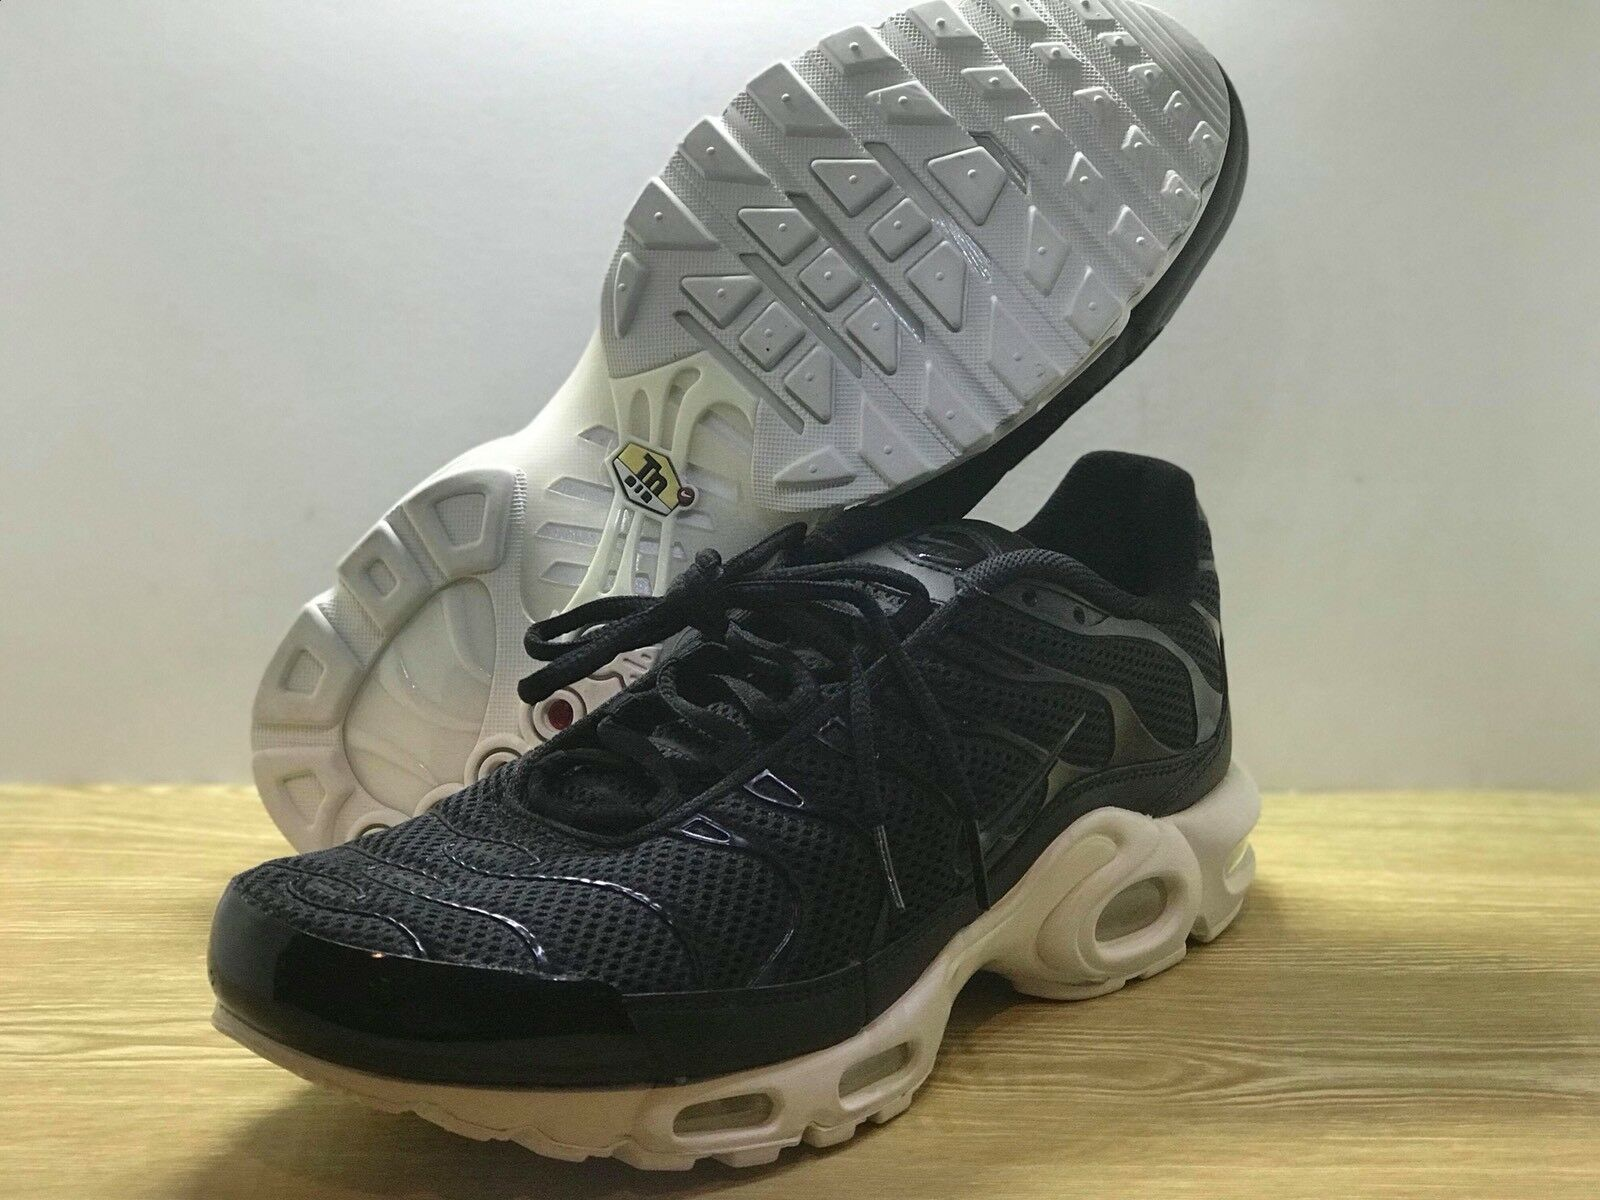 Nike Airmax Plus BR TN Air - Black White (898014-001) Size 12 Mens